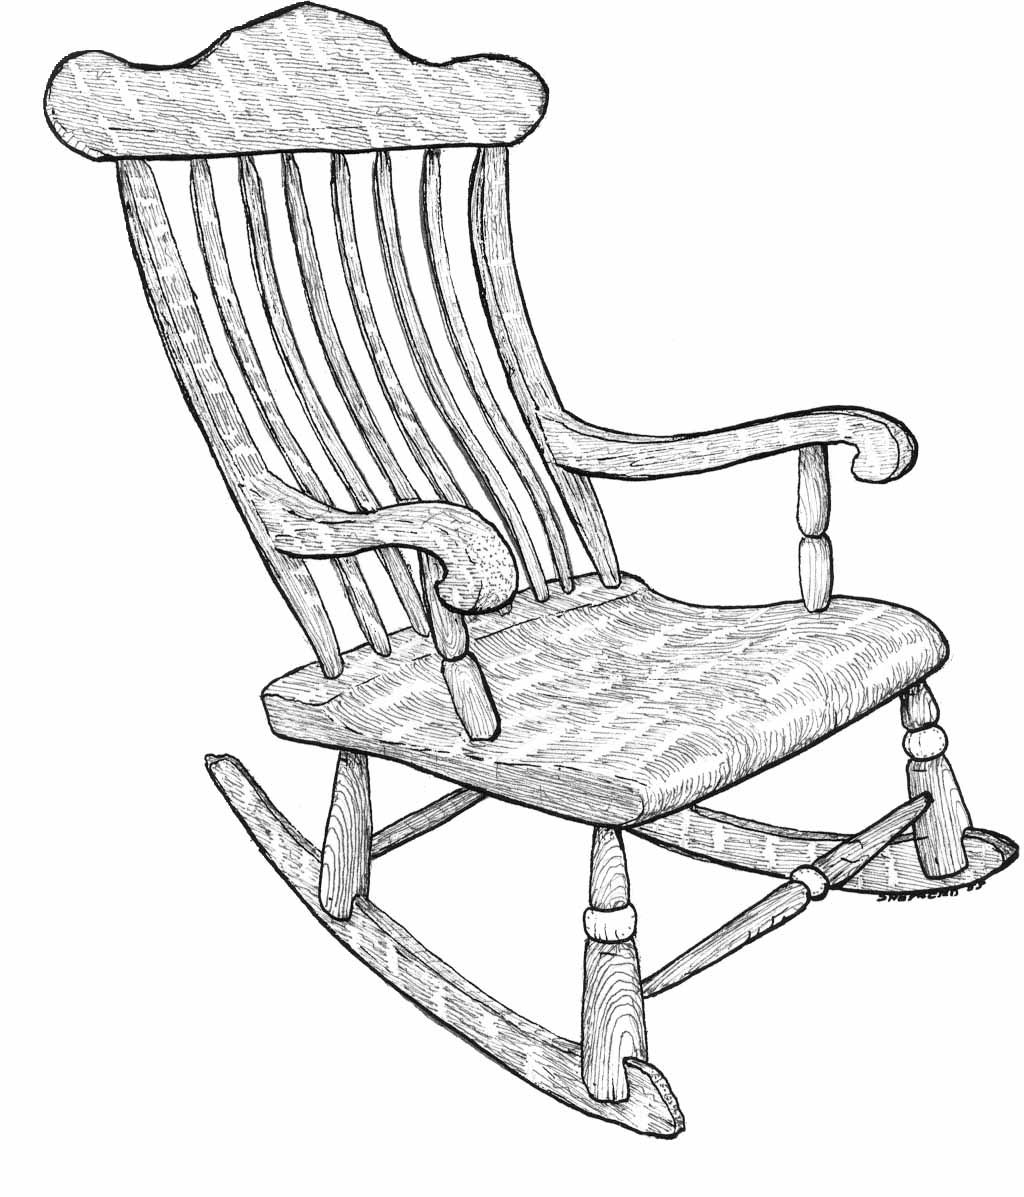 Chairs drawing at getdrawings free for personal use